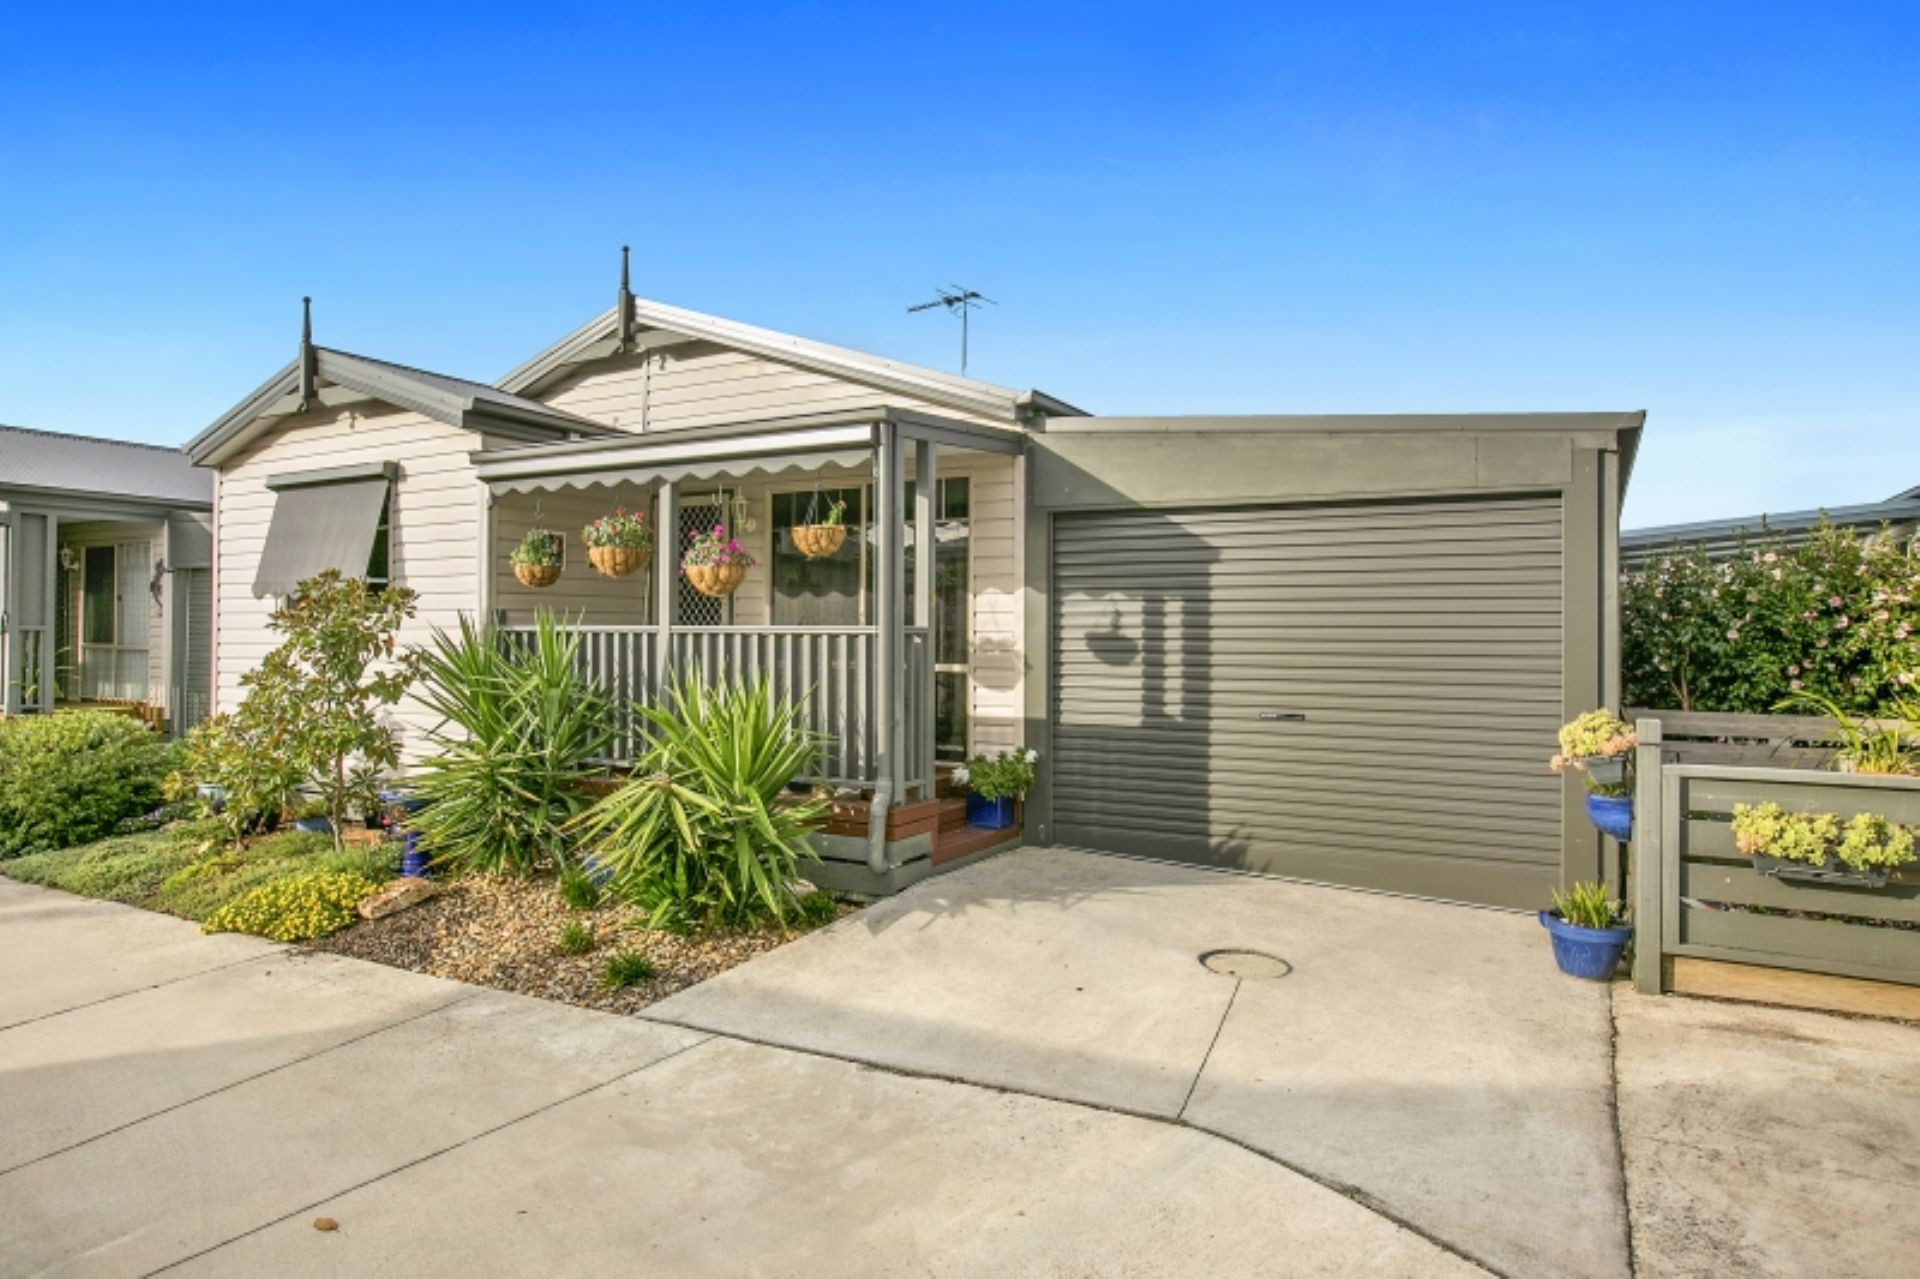 9/249 High Street, HASTINGS, VIC, 3915 - Image